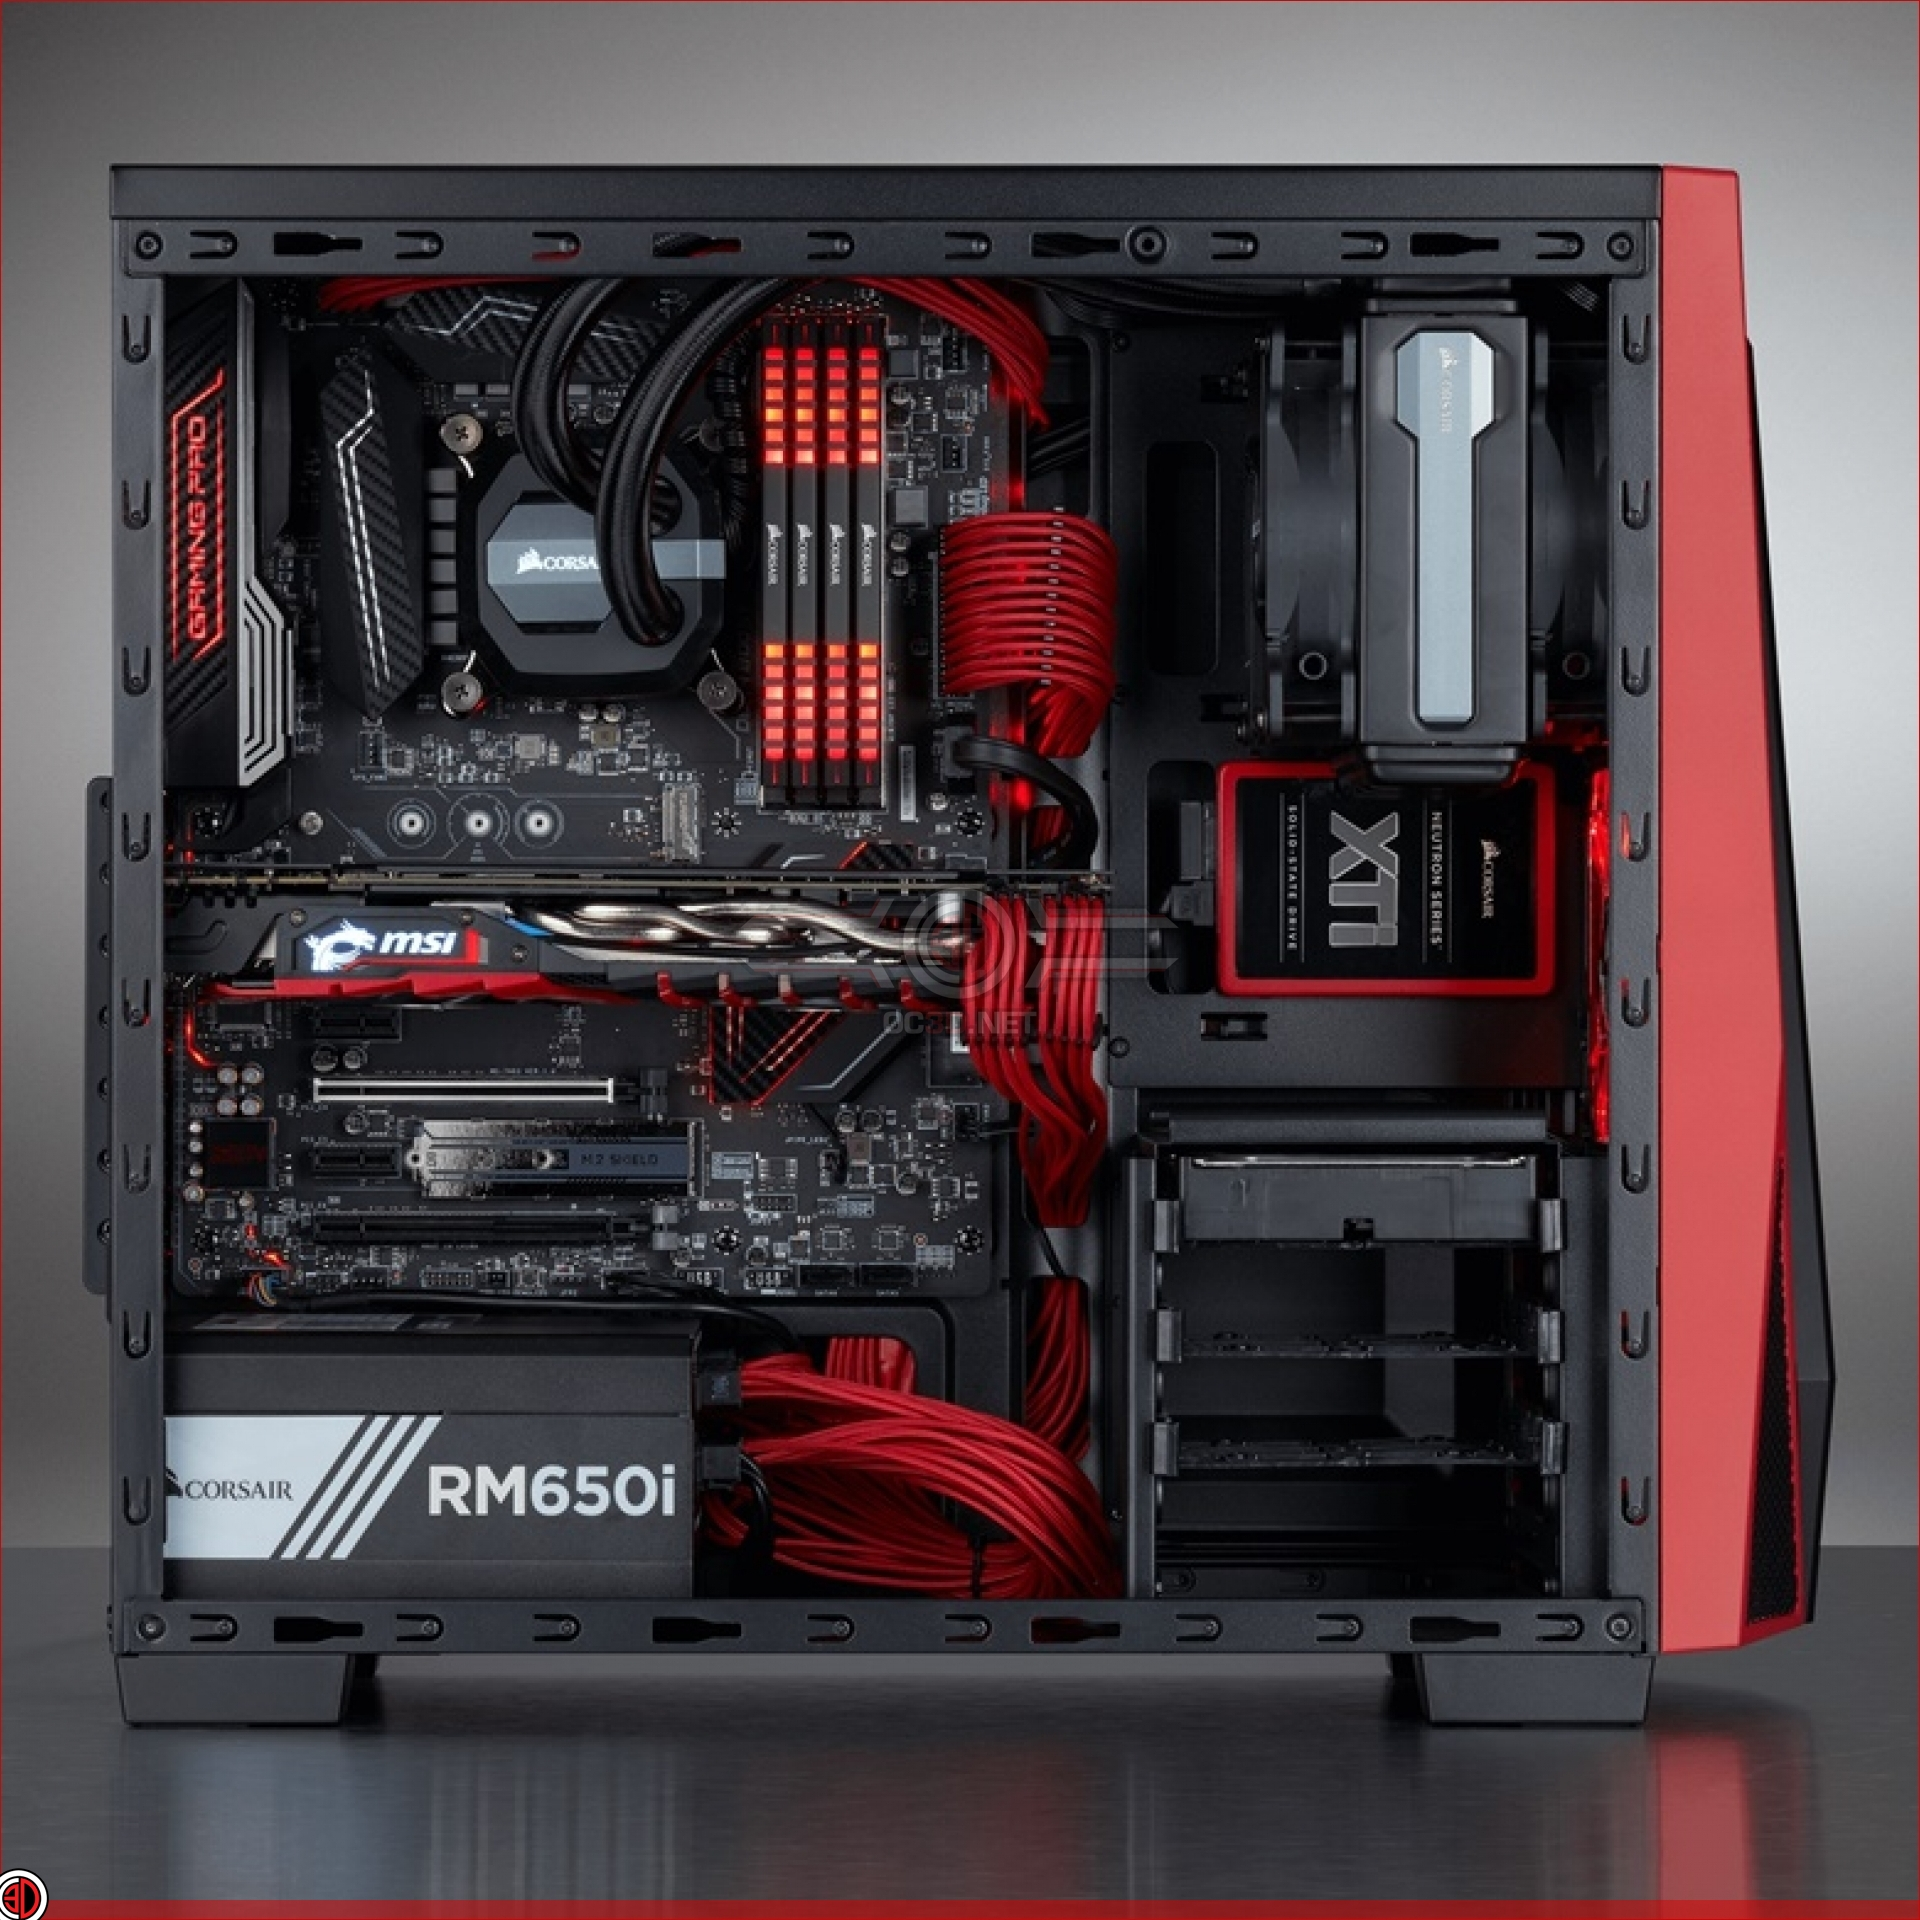 04: Corsair Launches Their New Carbide SPEC-04 Mid-tower